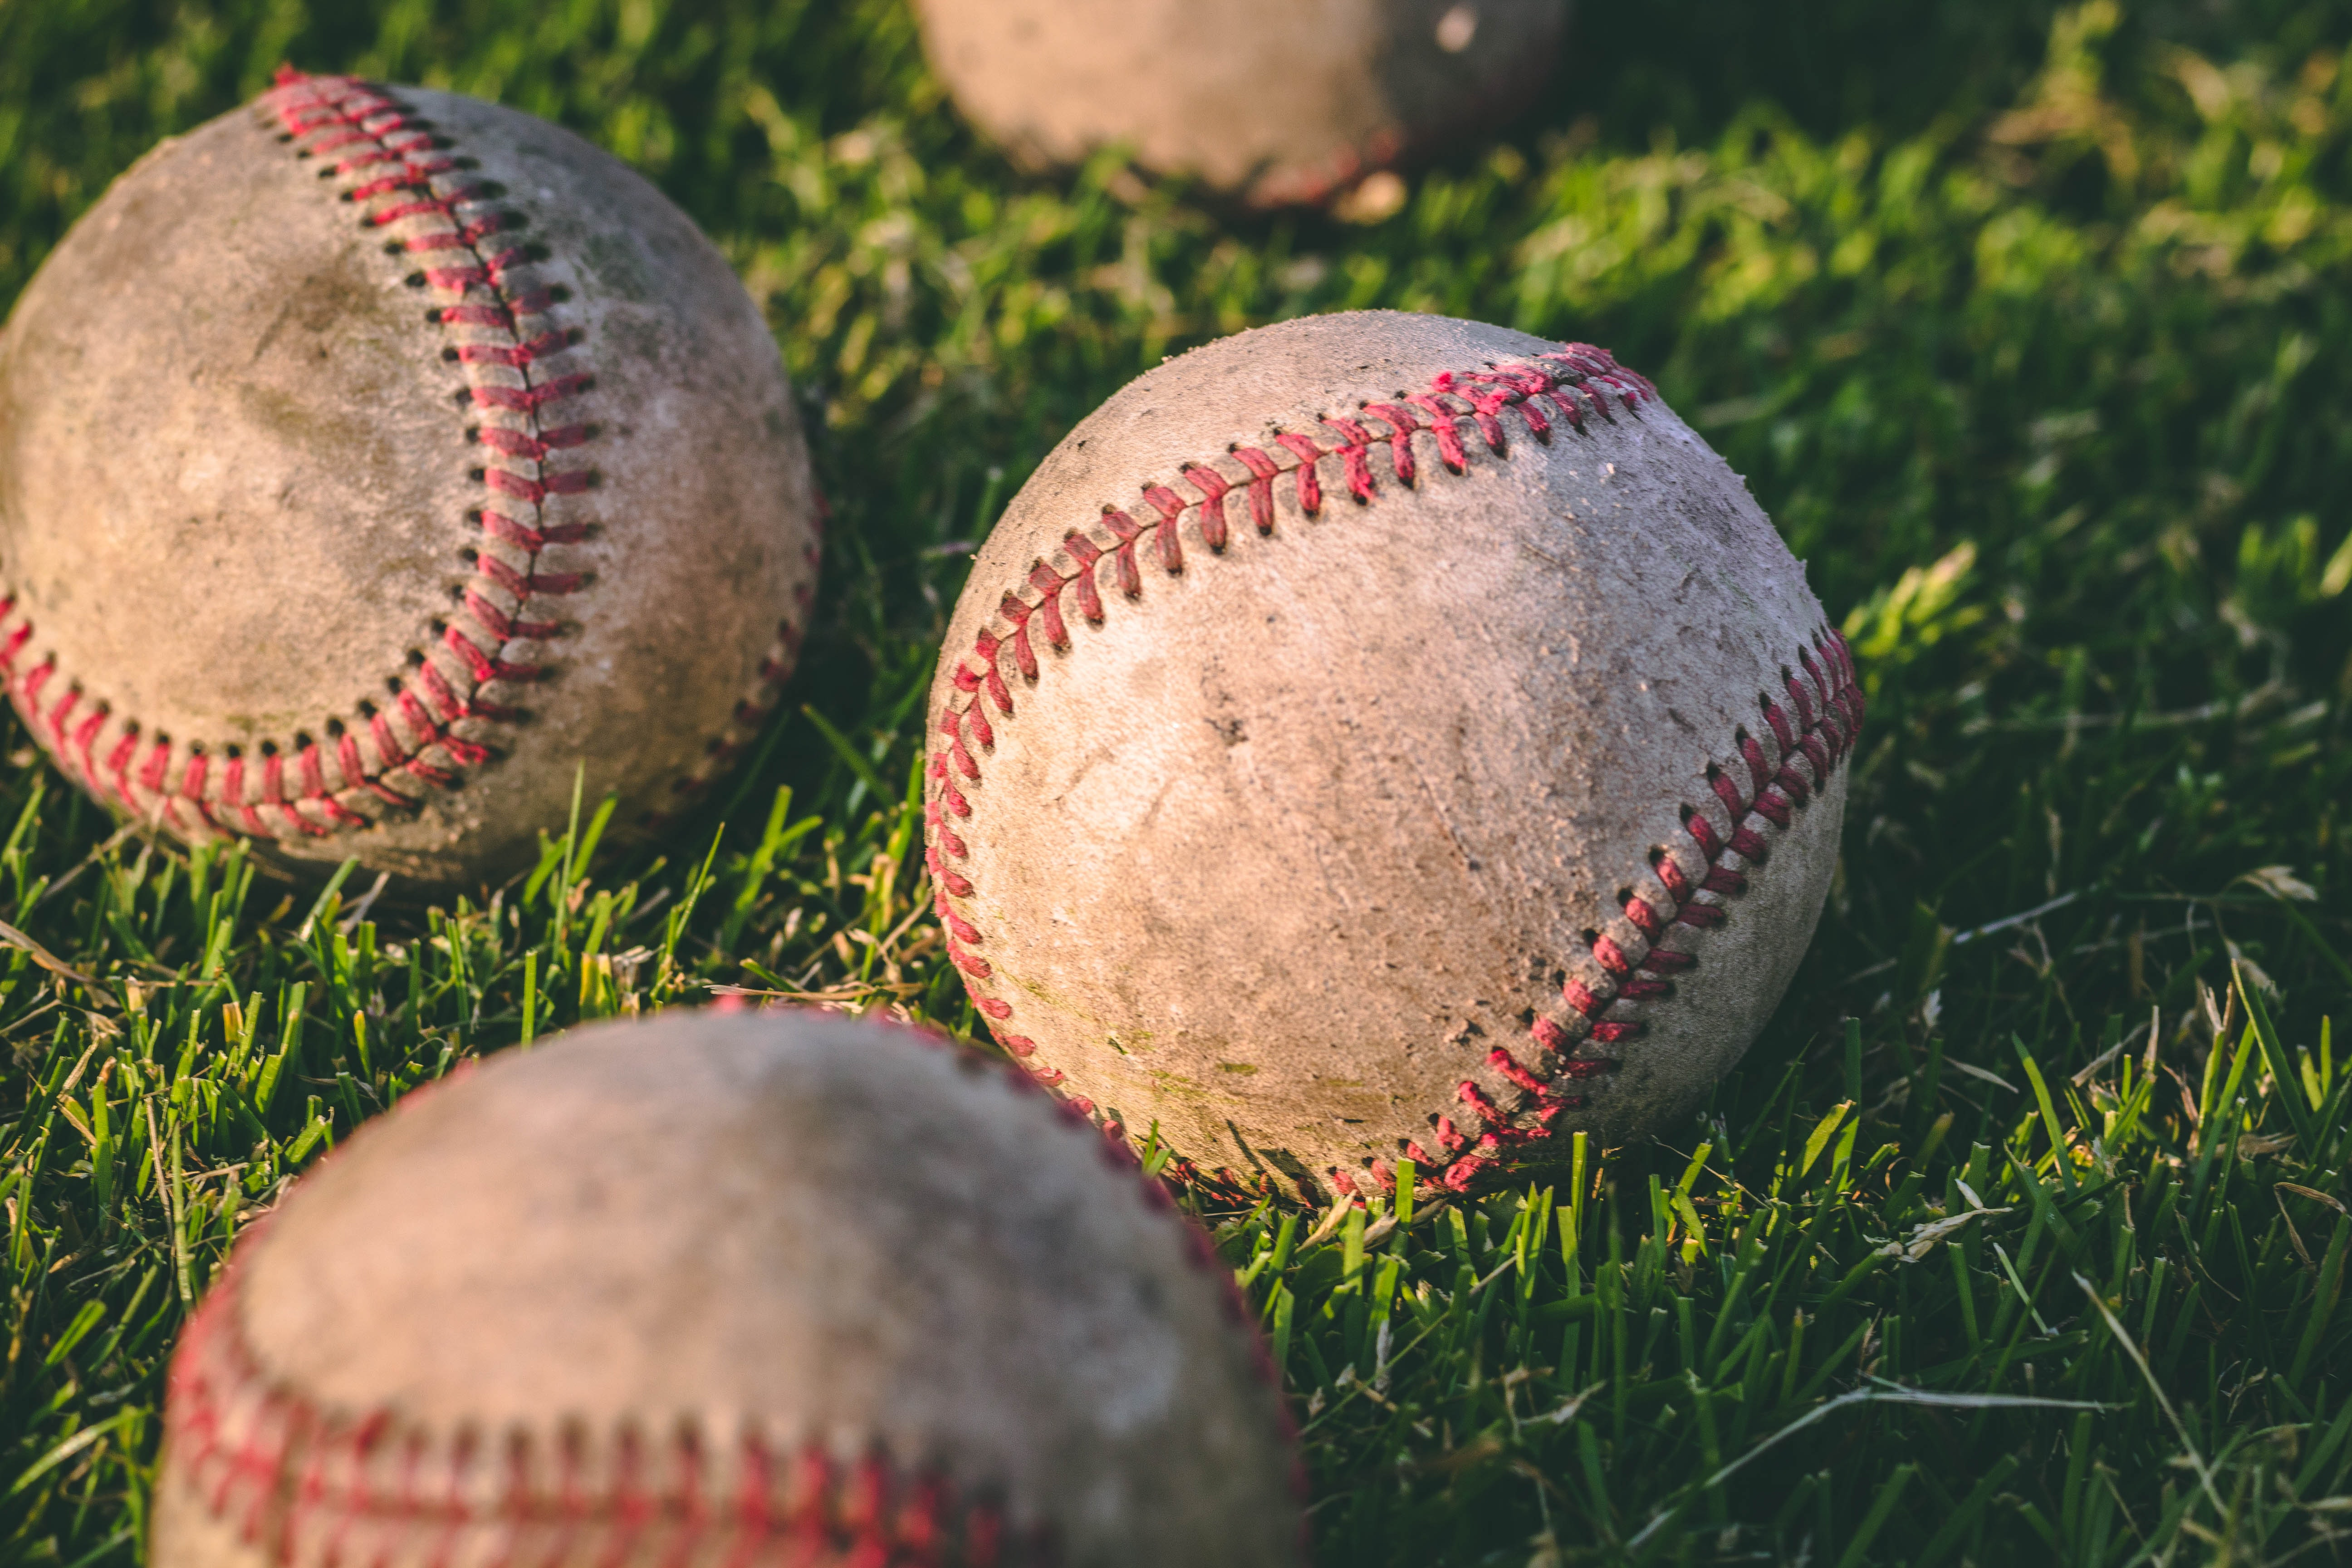 close-up-photography-of-four-baseballs-on-green-lawn-grasses-1308713